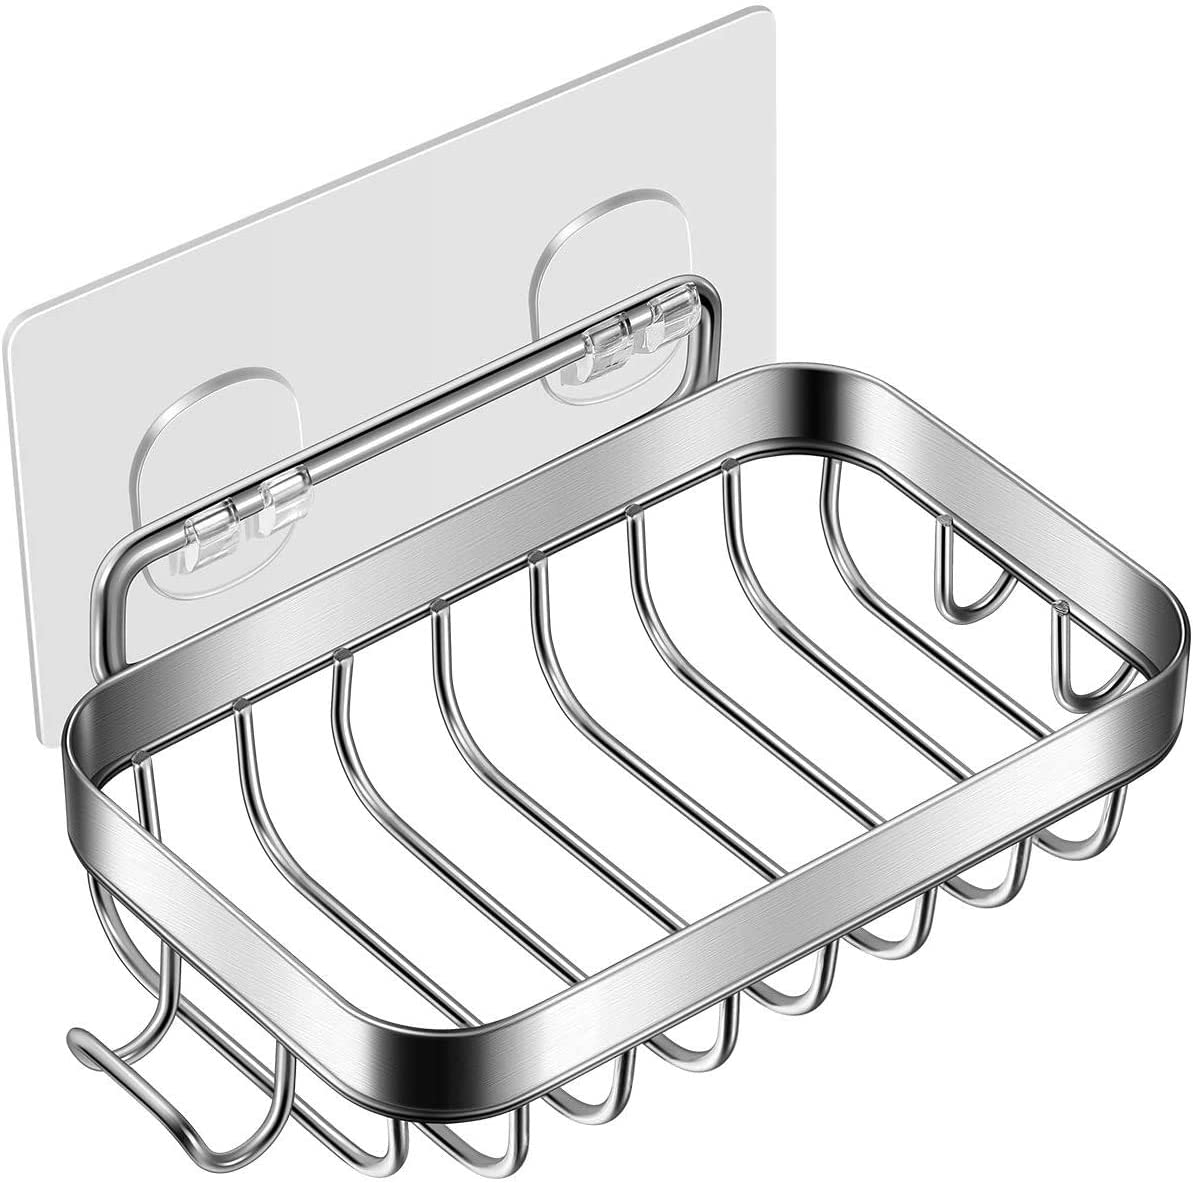 Bathroom Wall Mount Stainless Steel Soap Dish Holder commodity shelf with hooK